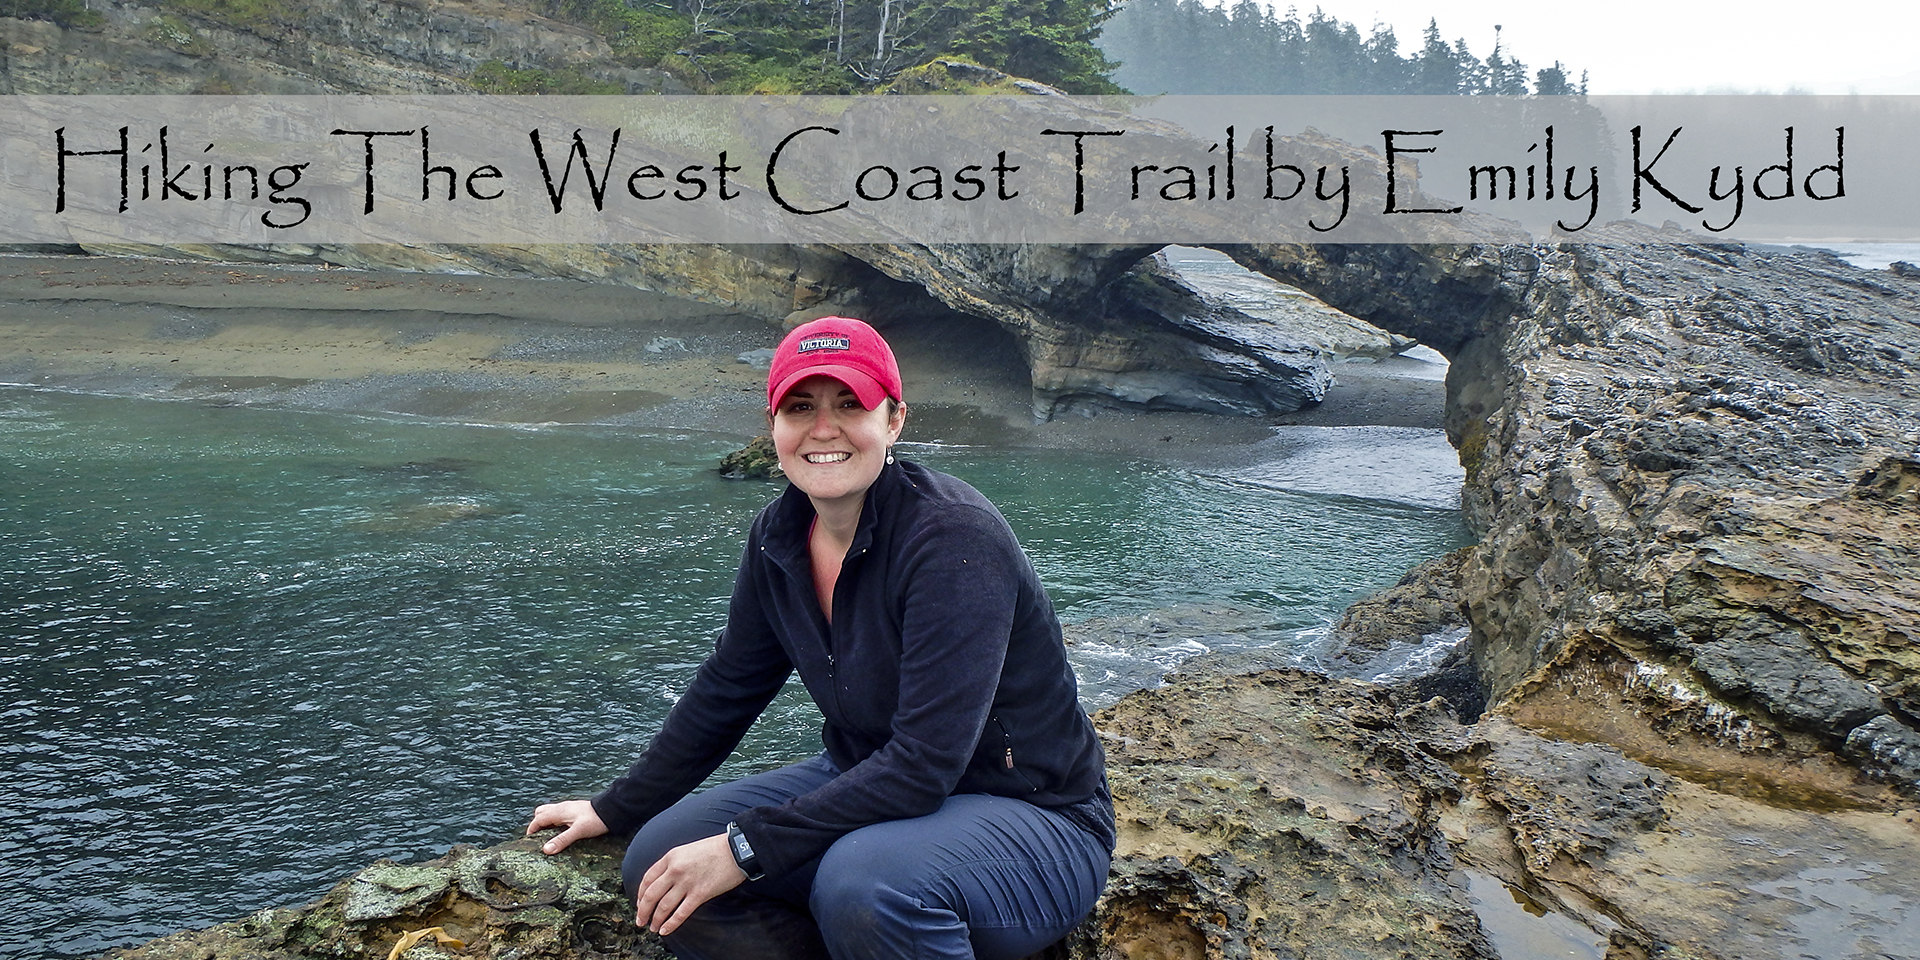 GUEST POST: Hiking The West Coast Trail by Emily Kydd